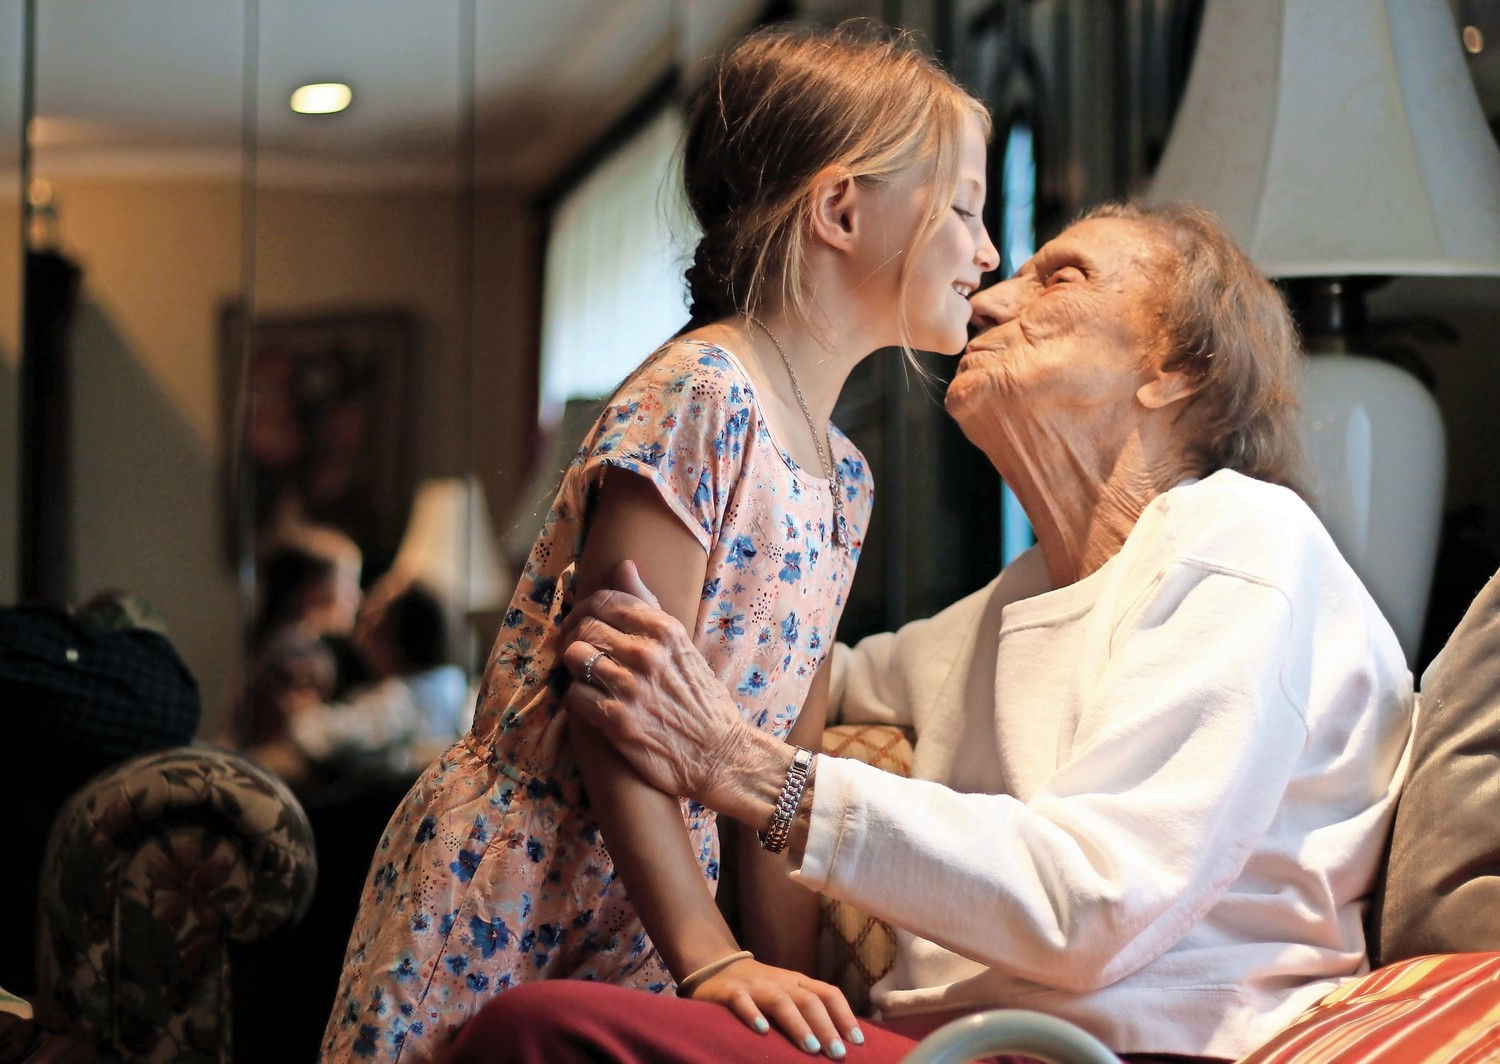 Seven-year-old Allie Younghans kissed her great-grandmother Mary Catherine Kowalski Fennessy, who will be the first in the Fennessy family to turn 100 on Sept. 17.